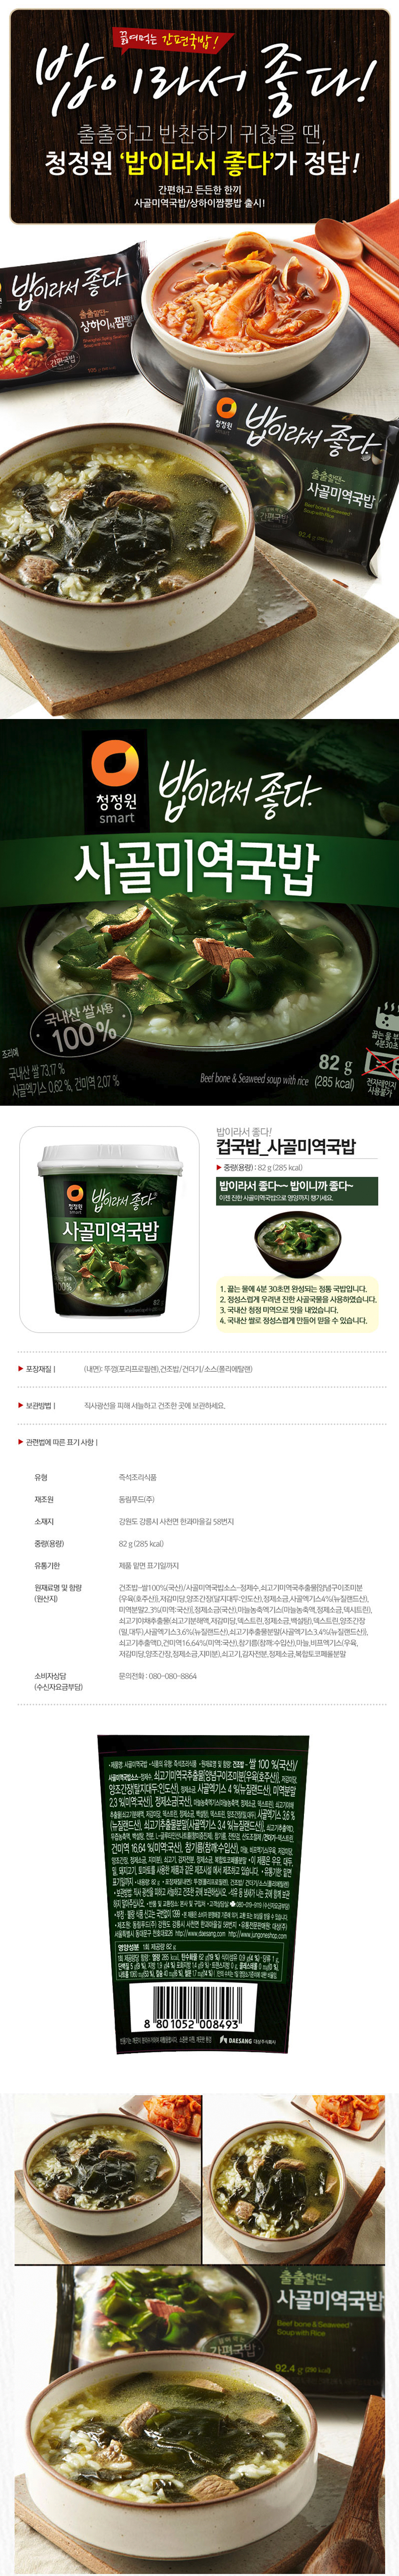 [ chungjungone ] BEEF BORN RICE SOUP LARGE CUP 82g x 6pcs